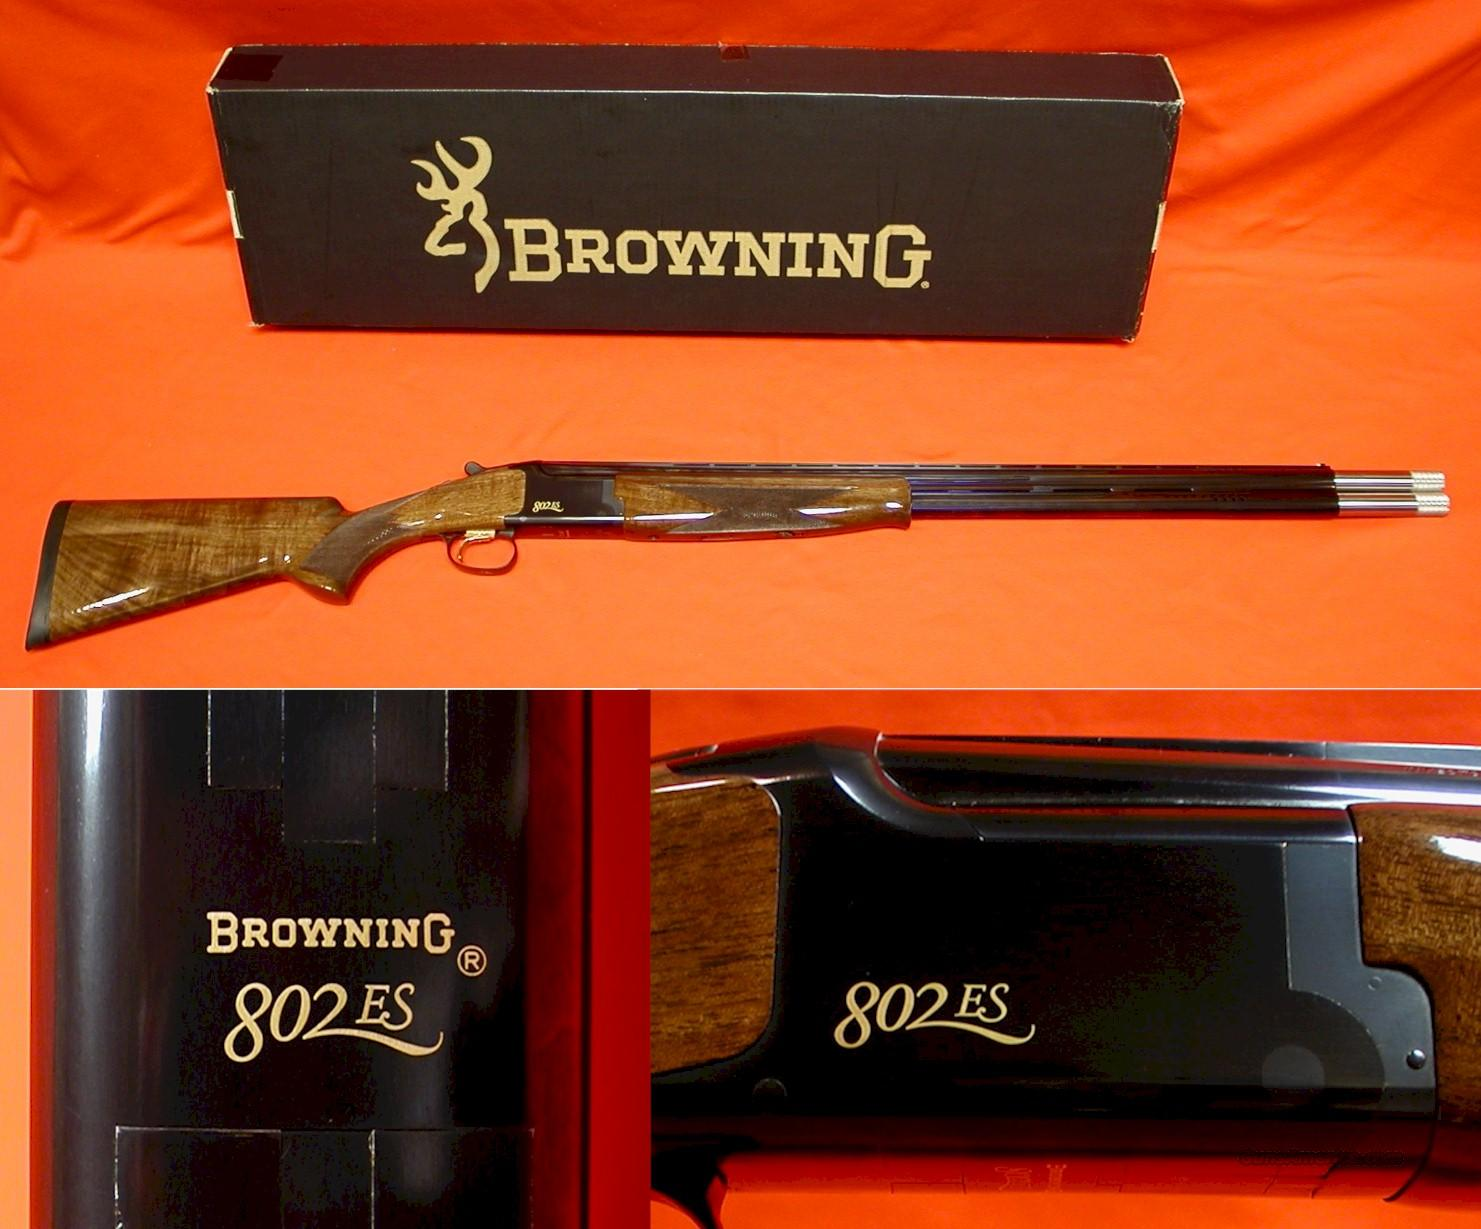 BROWNING CITORI 802 E S SPORTING WITH EXTENDED SWING CHOKE TUBES